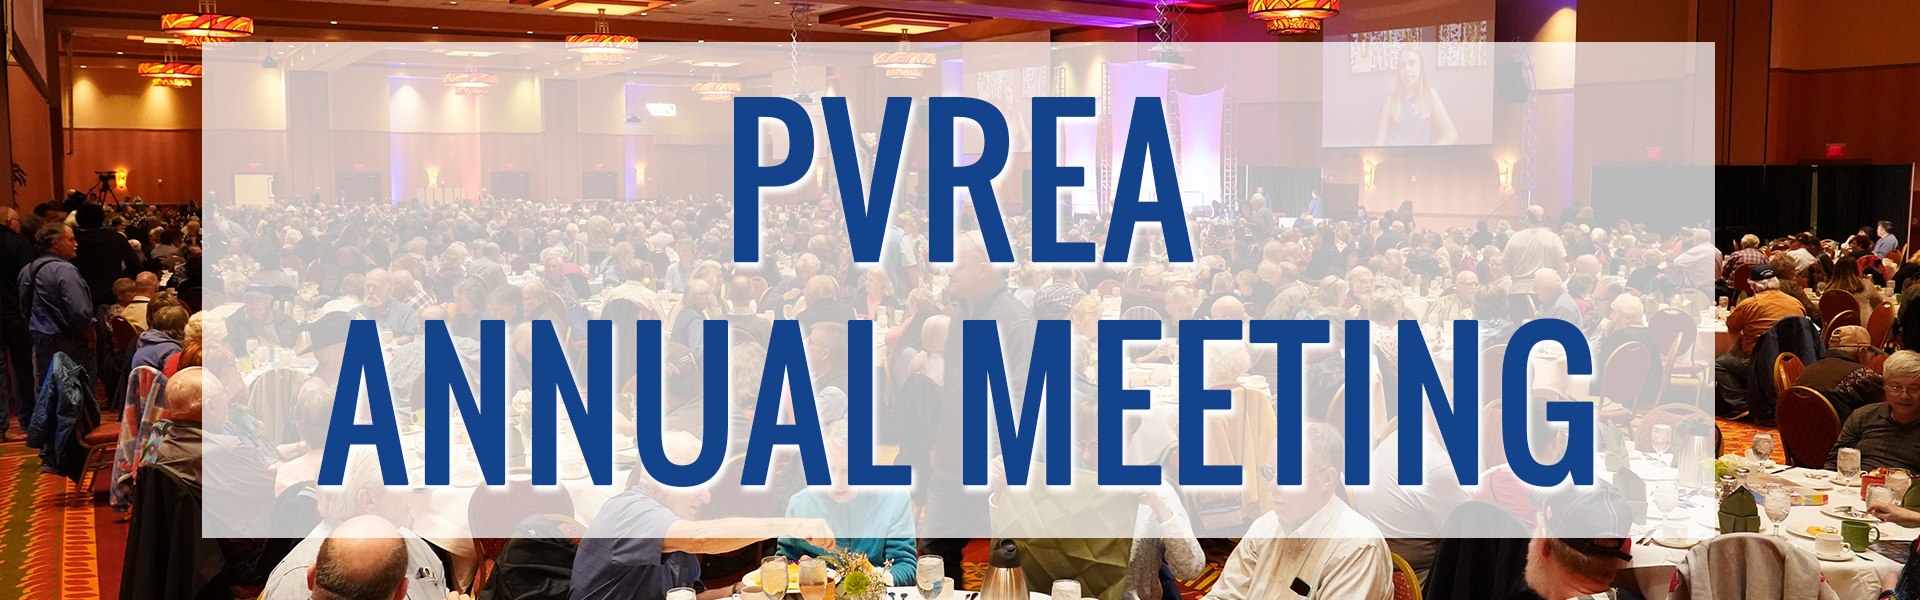 pvrea annual meeting